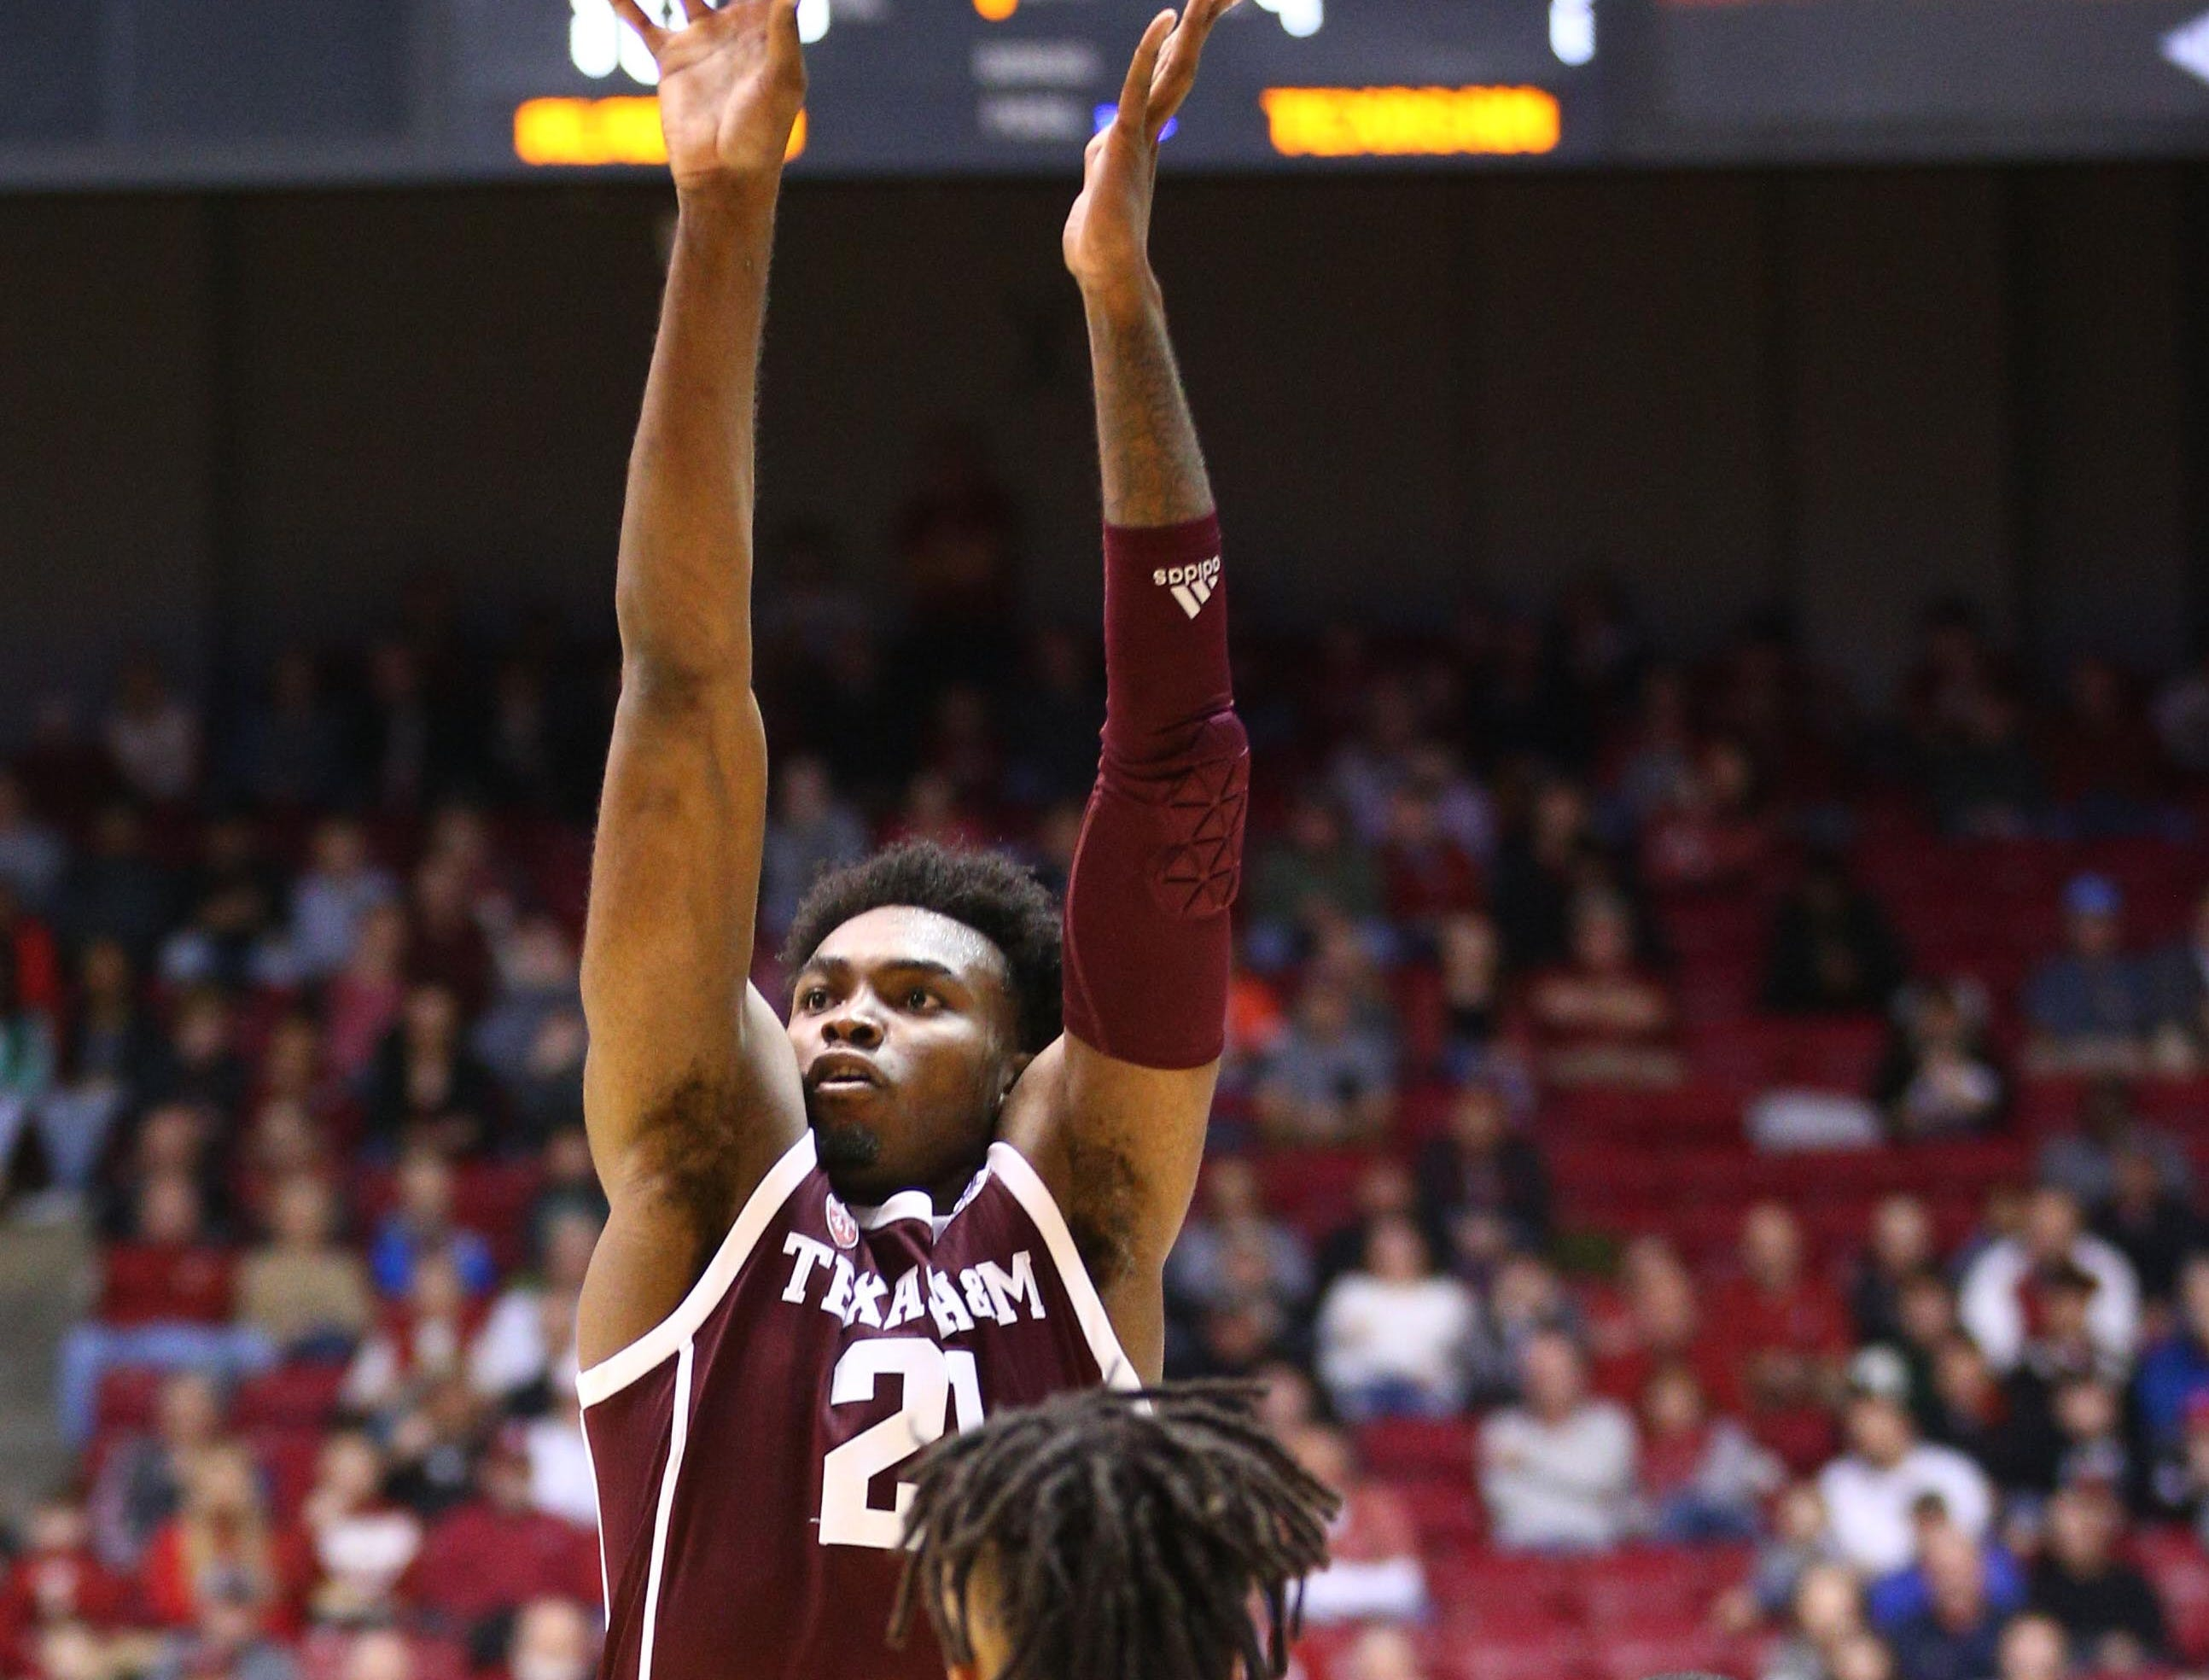 Jan 12, 2019; Tuscaloosa, AL, USA; Texas A&M Aggies forward Christian Mekowulu (21) shoots against Alabama Crimson Tide guard Dazon Ingram (12) during the first half at Coleman Coliseum. Mandatory Credit: Marvin Gentry-USA TODAY Sports